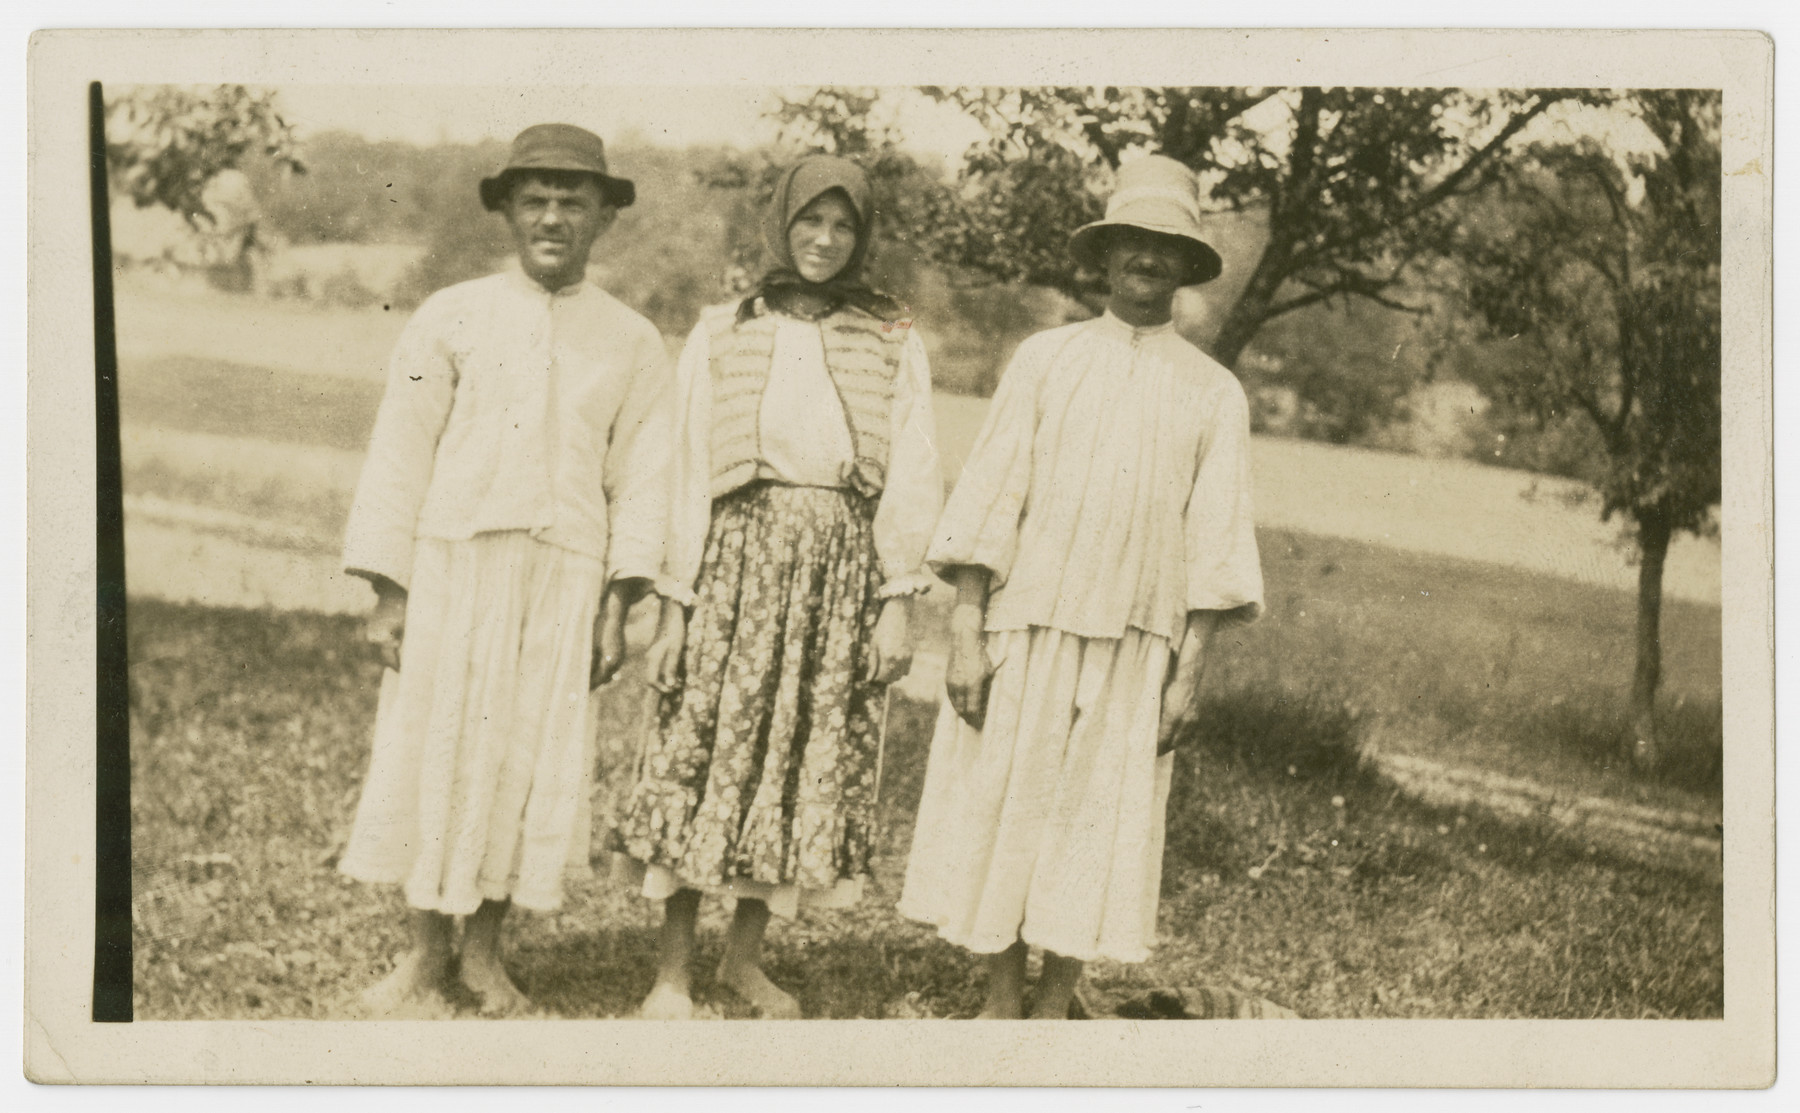 Three family members stand outside to pose for a portrait.